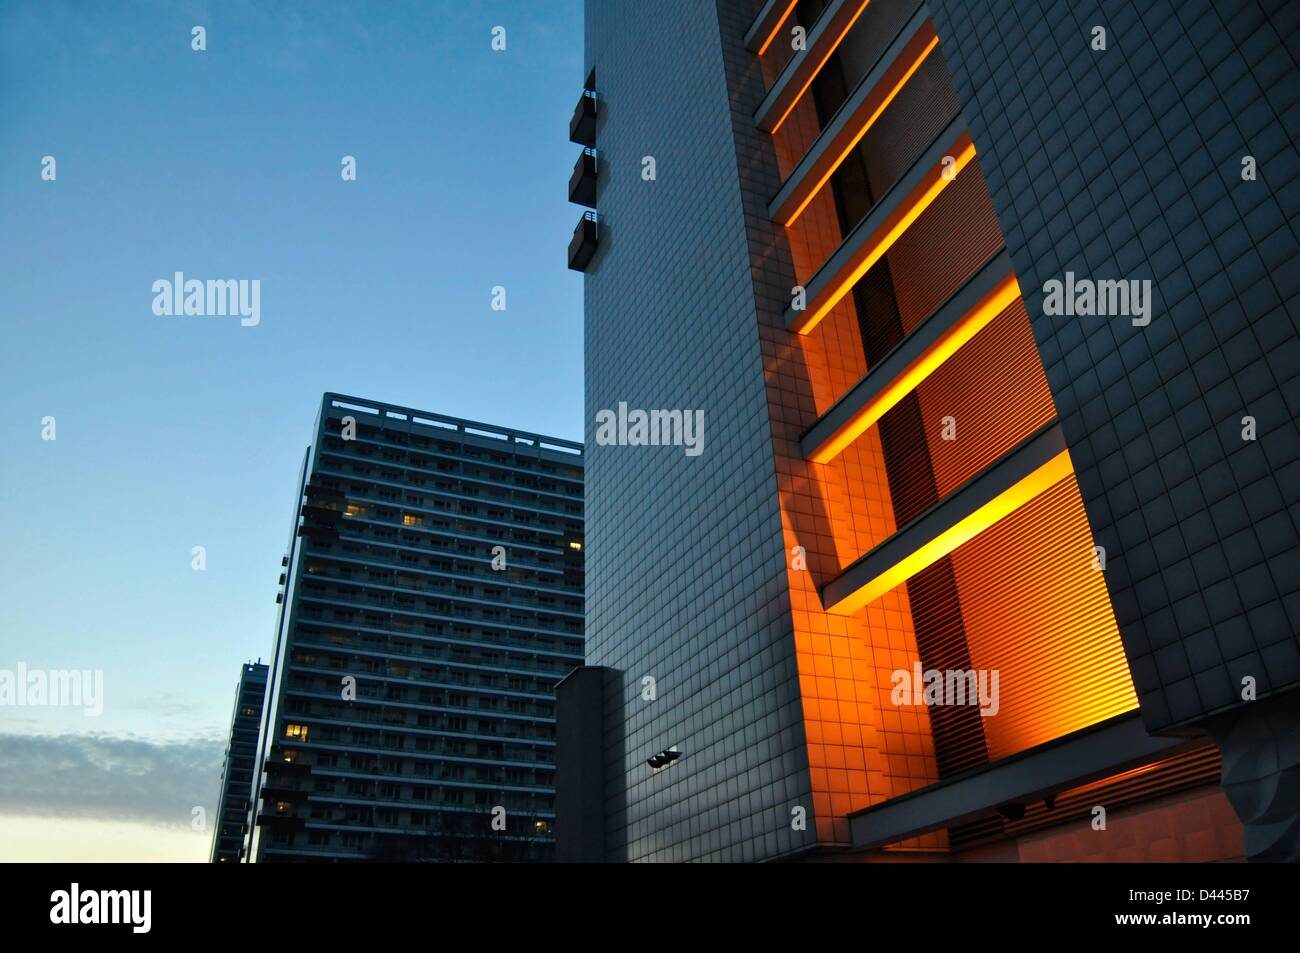 The illuminated front of a skyscraper during the blue hour in Leipziger Strasse in Berlin, Germany, 24 February - Stock Image